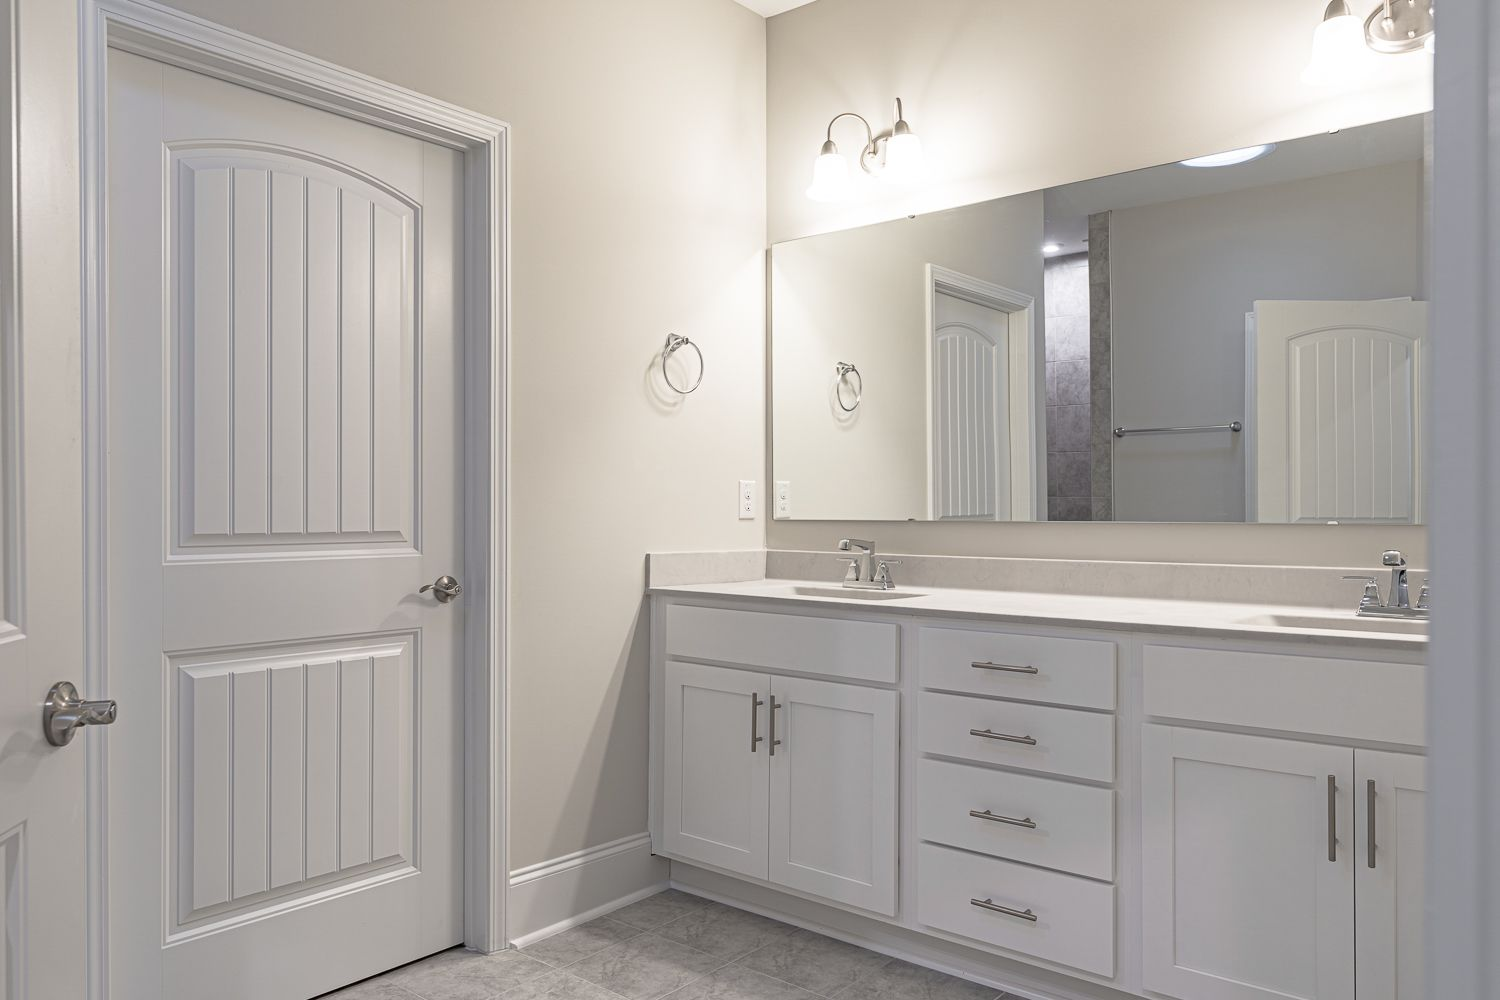 Bathroom featured in the Promenade Craftsman By McKee Homes in Wilmington, NC